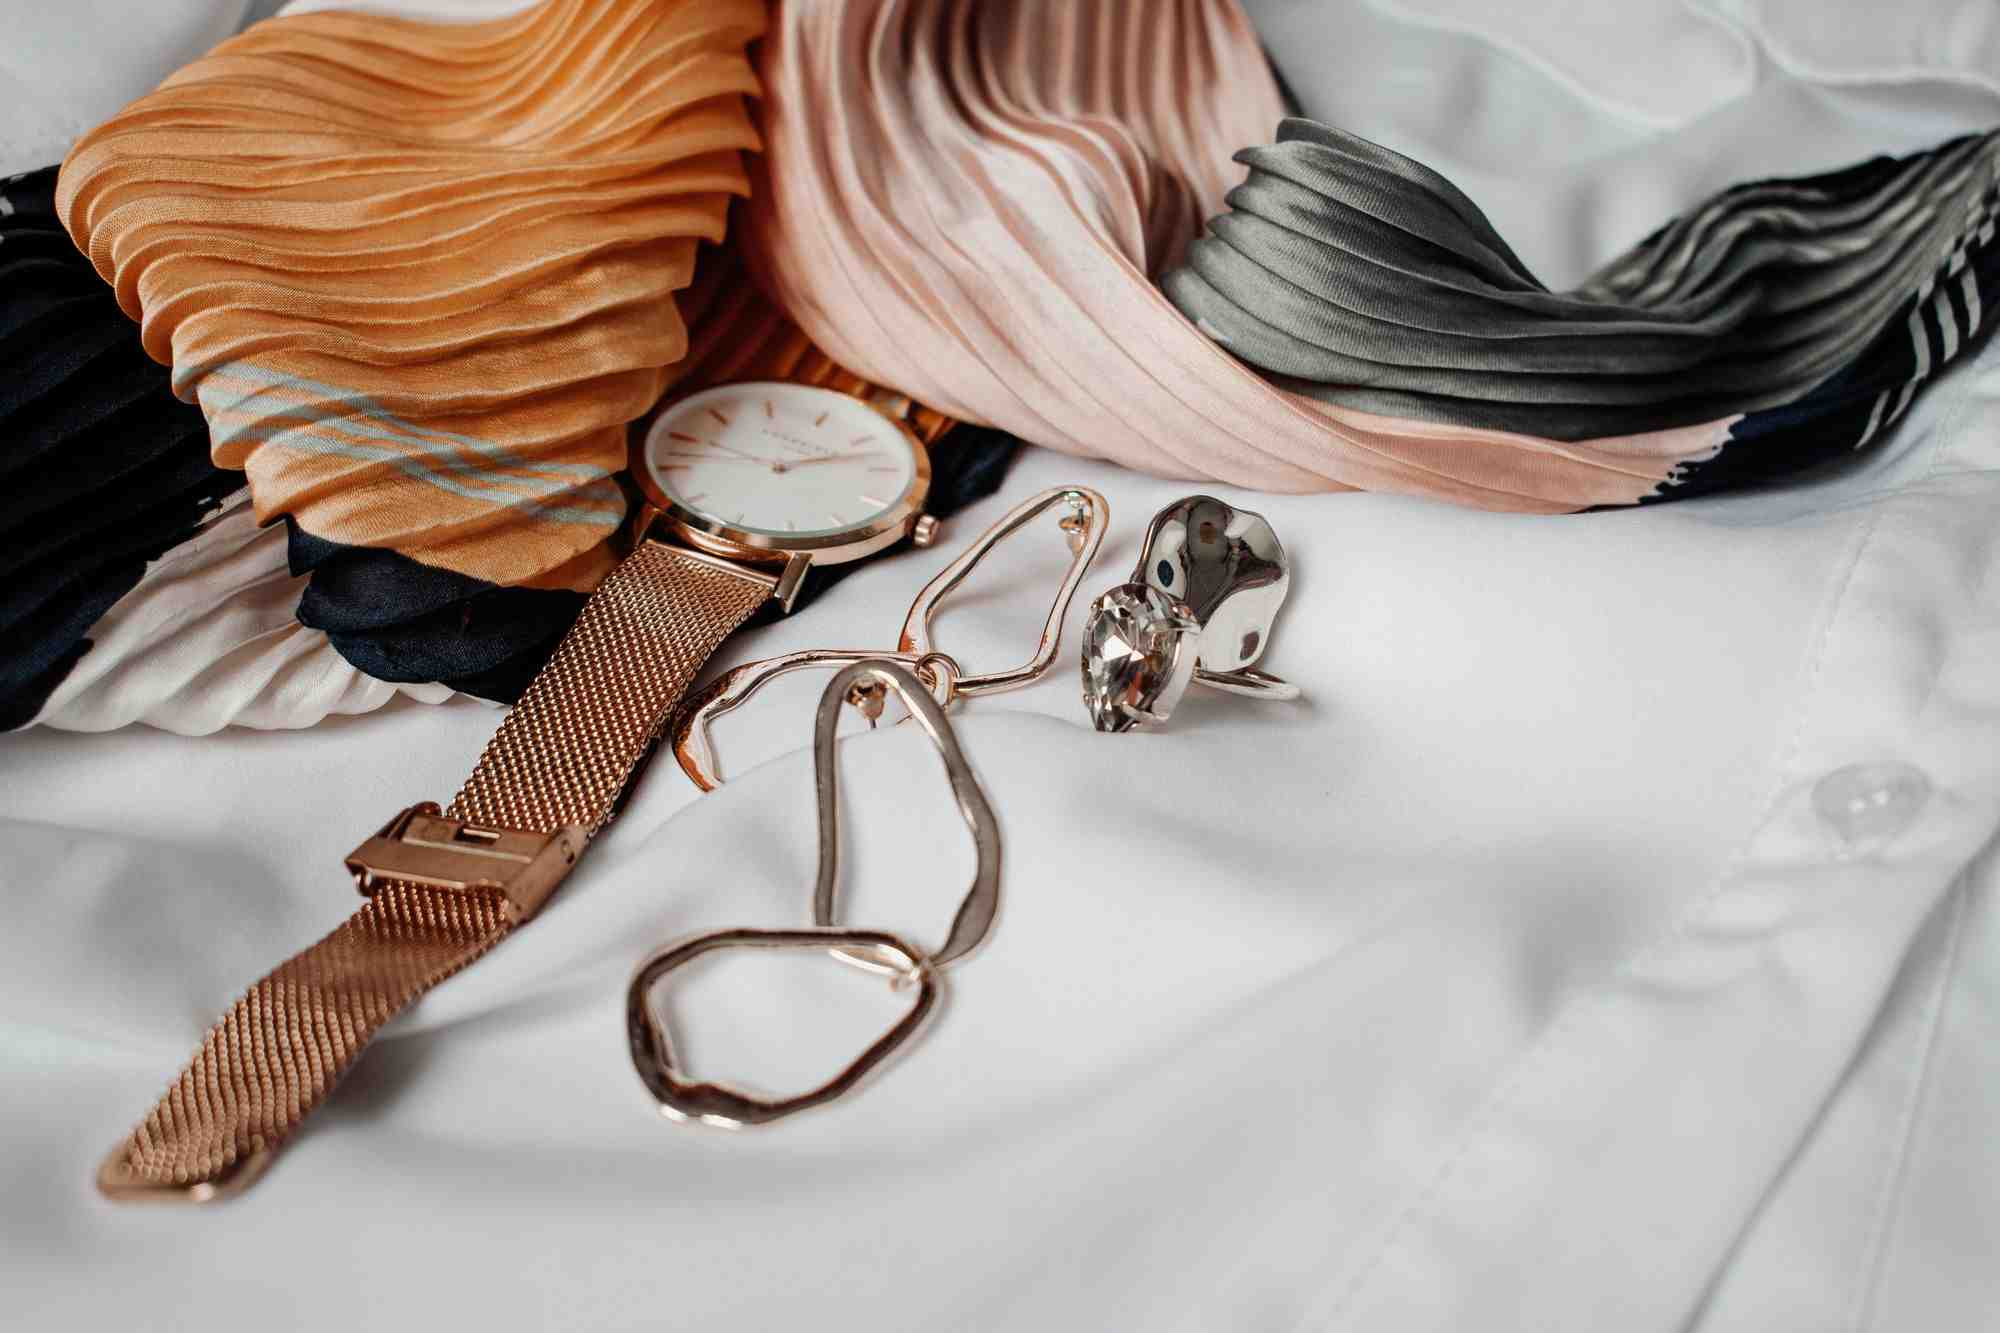 Expensive-Watch-and-Jewellery-on-White-Buttoned-Shirt